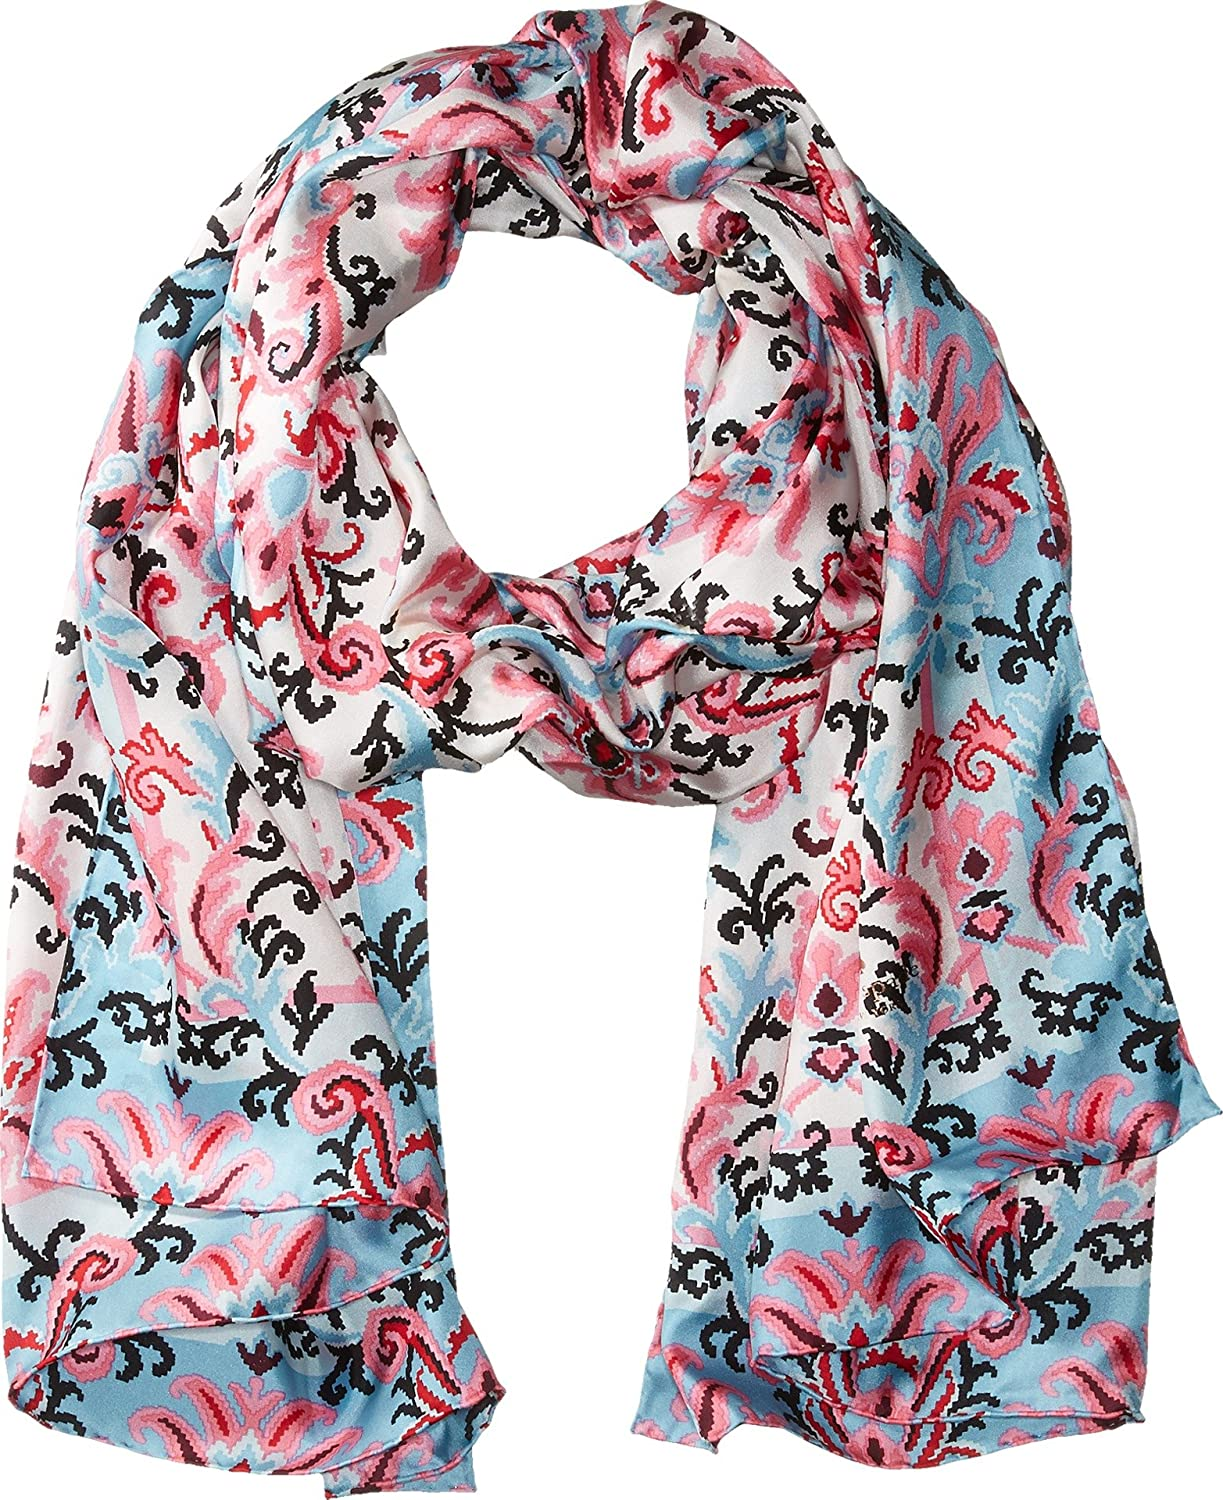 Kate Spade New York Womens Tapestry Silk Oblong Scarf Parisian Pink Pashmina Kerudung Pk2 23 One Size At Amazon Clothing Store